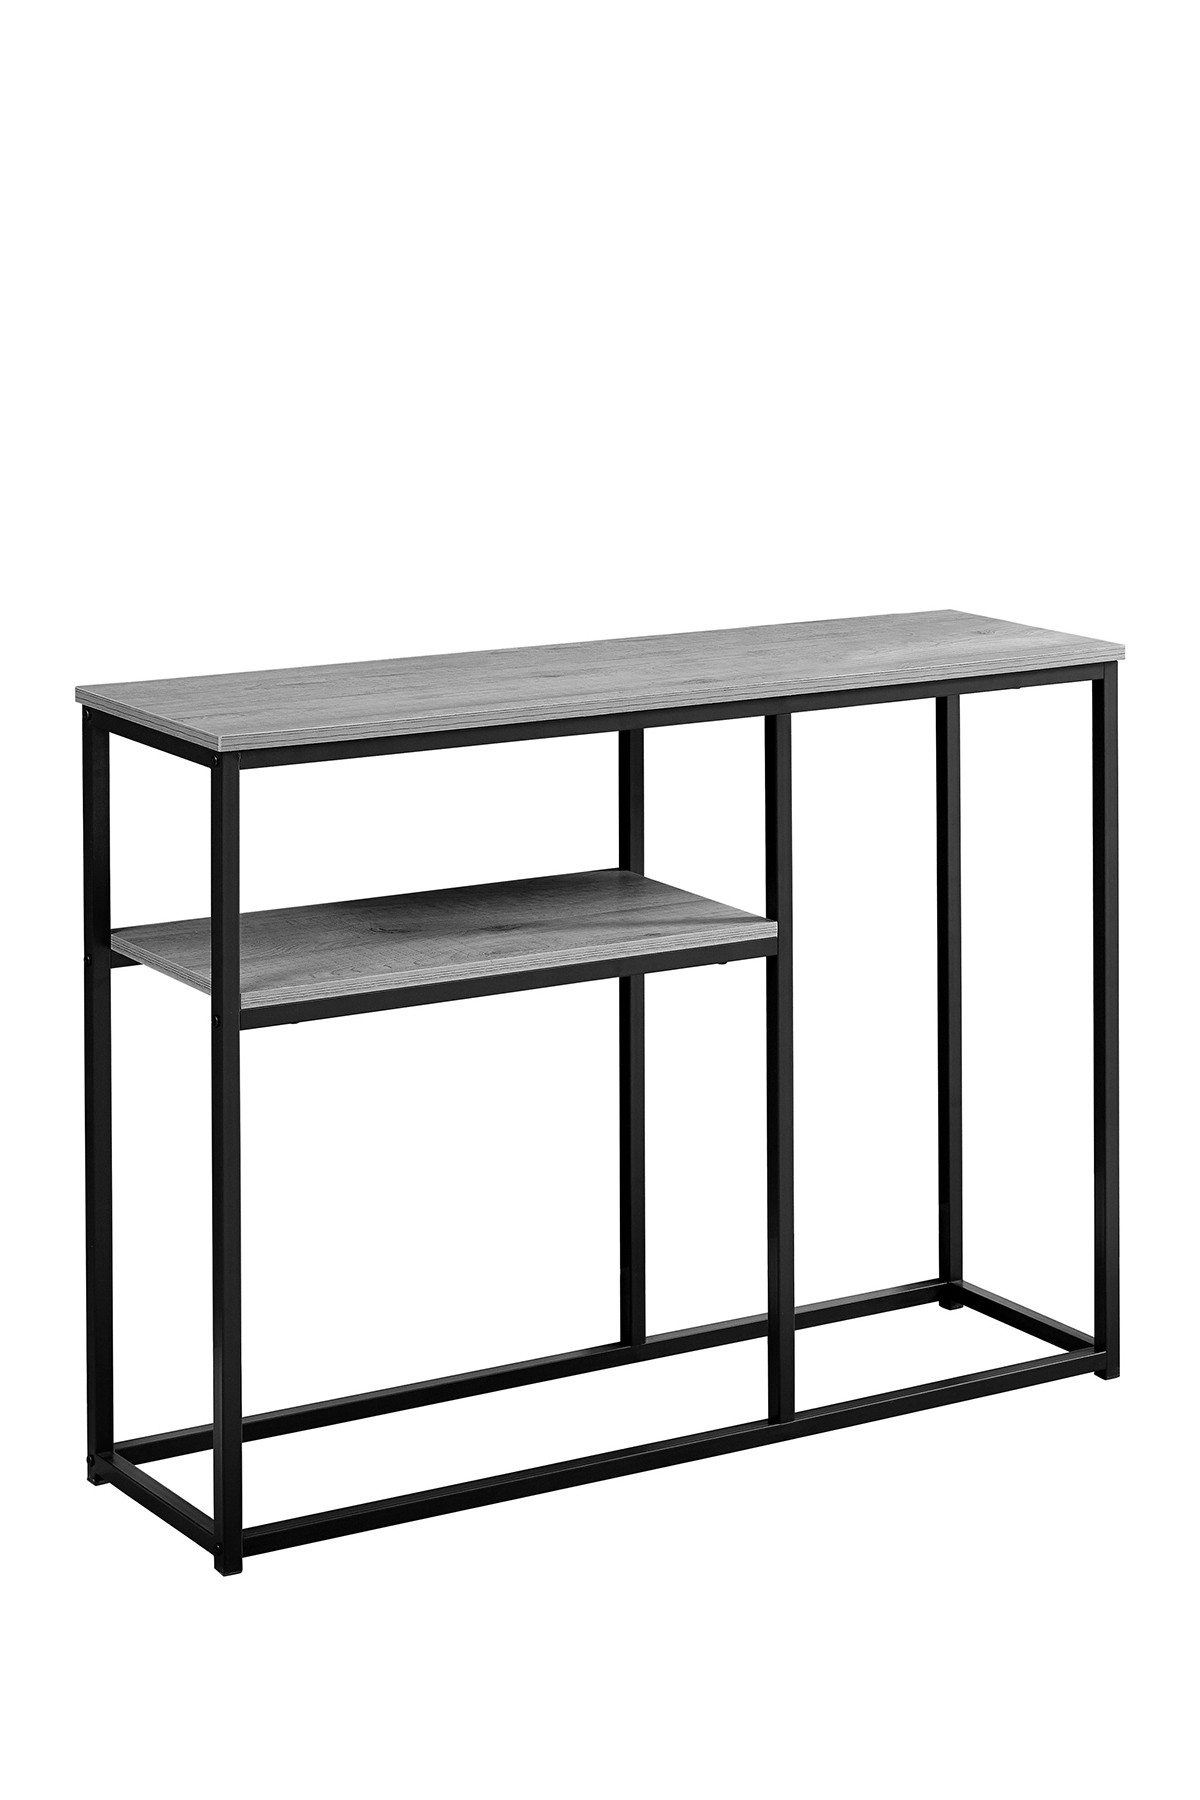 monarch specialties grey hall console accent table nordstrom rack office storage cabinets small round metal garden dark side teal chest nautical light fixtures indoor comfy